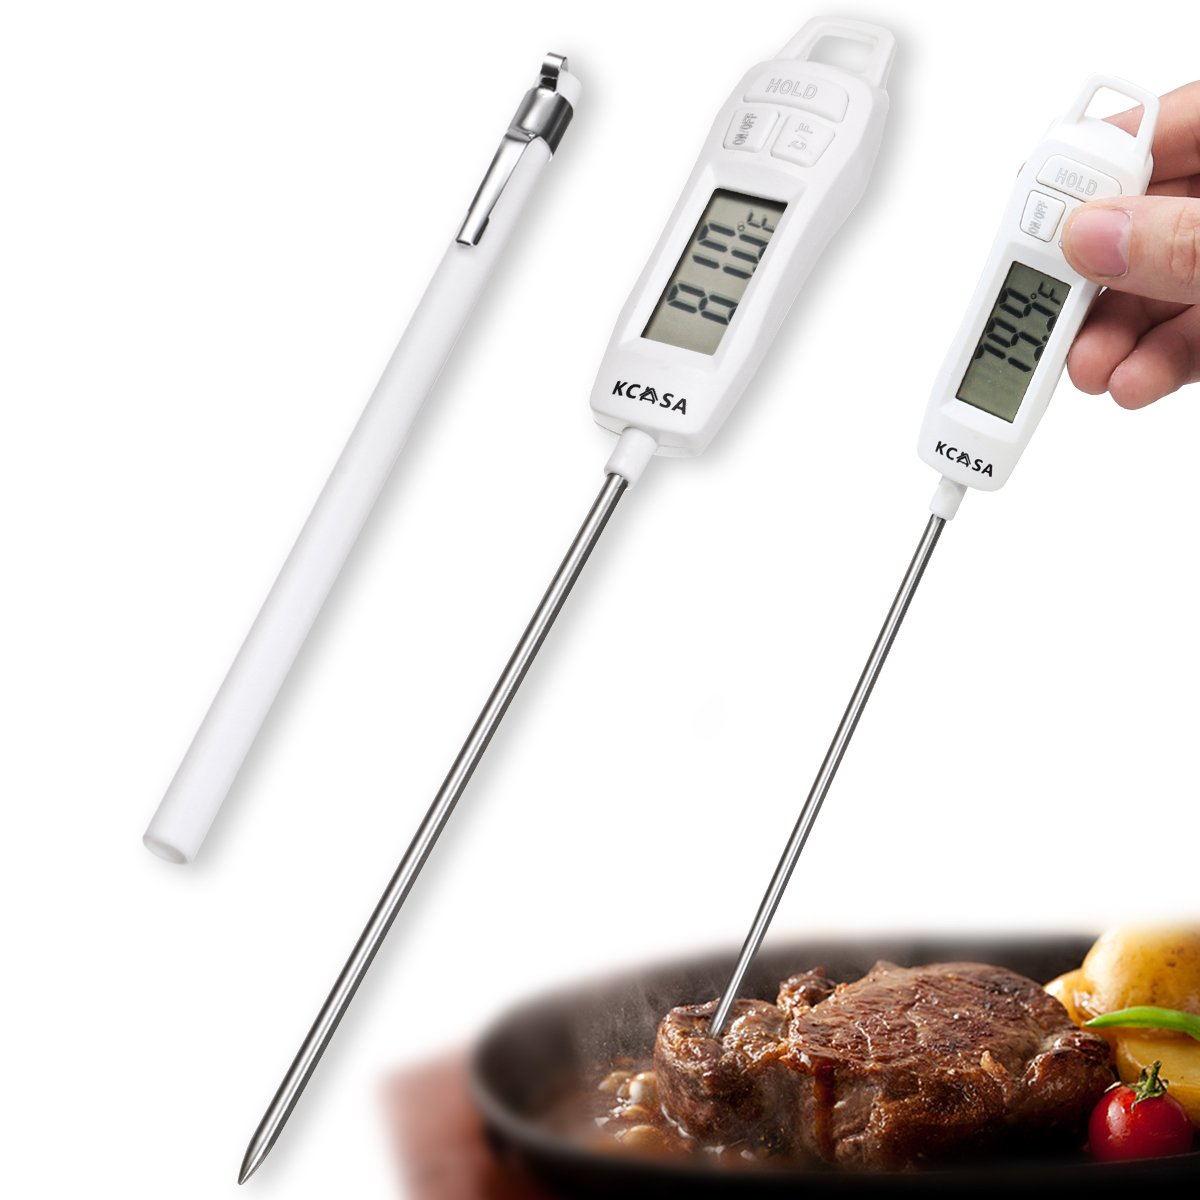 Janolia Pen Shape Meat Thermometer, High-performing Instant Read Cooking Thermometer, Long Probe and Cover for Kitchen Cooking, DIY Candy Making, BBQ Grill Meat, Fried Food, Milk, Honey